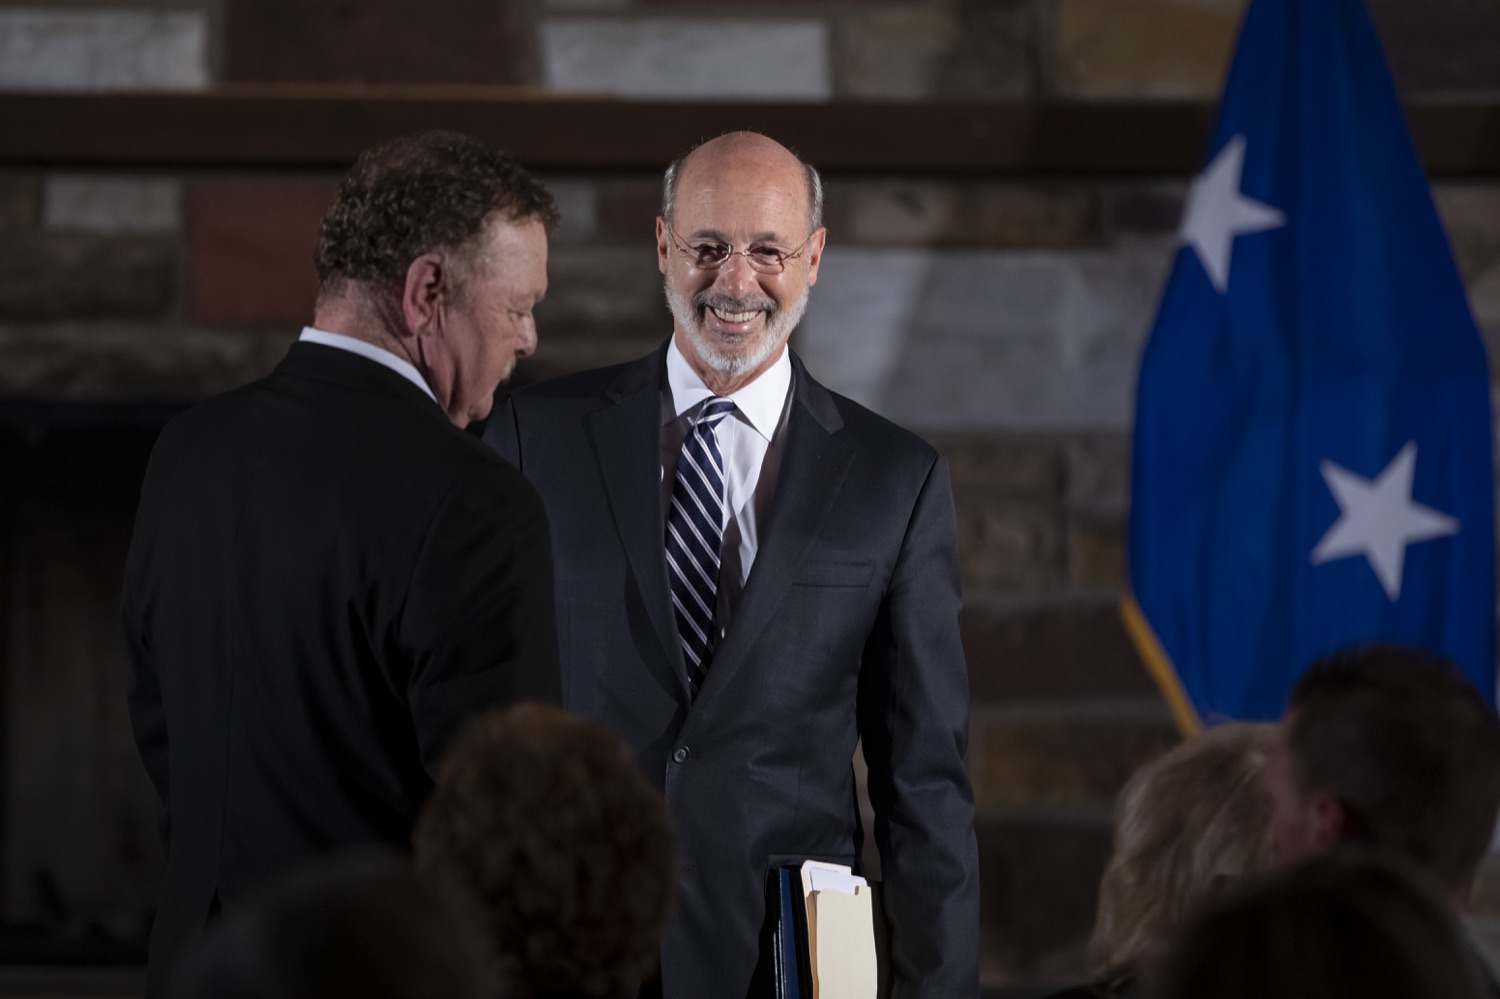 "<a href=""http://filesource.abacast.com/commonwealthofpa/photo/17557_gov_dmva_rjw_001.jpg"" target=""_blank"">⇣ Download Photo<br></a>Governor Tom Wolf helped to honor two members inducted today into the Pennsylvania Department of Military and Veterans Affairs prestigious Hall of Fame, recognizing their exceptional service to the department that supports Pennsylvanias nearly 800,000 veterans and 18,000 members of the National Guard.  Chief Warrant Officer 5 (ret.) John K. Schreier of Selinsgrove, Snyder County; and John A. Brenner (posthumously) of Mt. Wolf, York County, are the 2019 inductees."